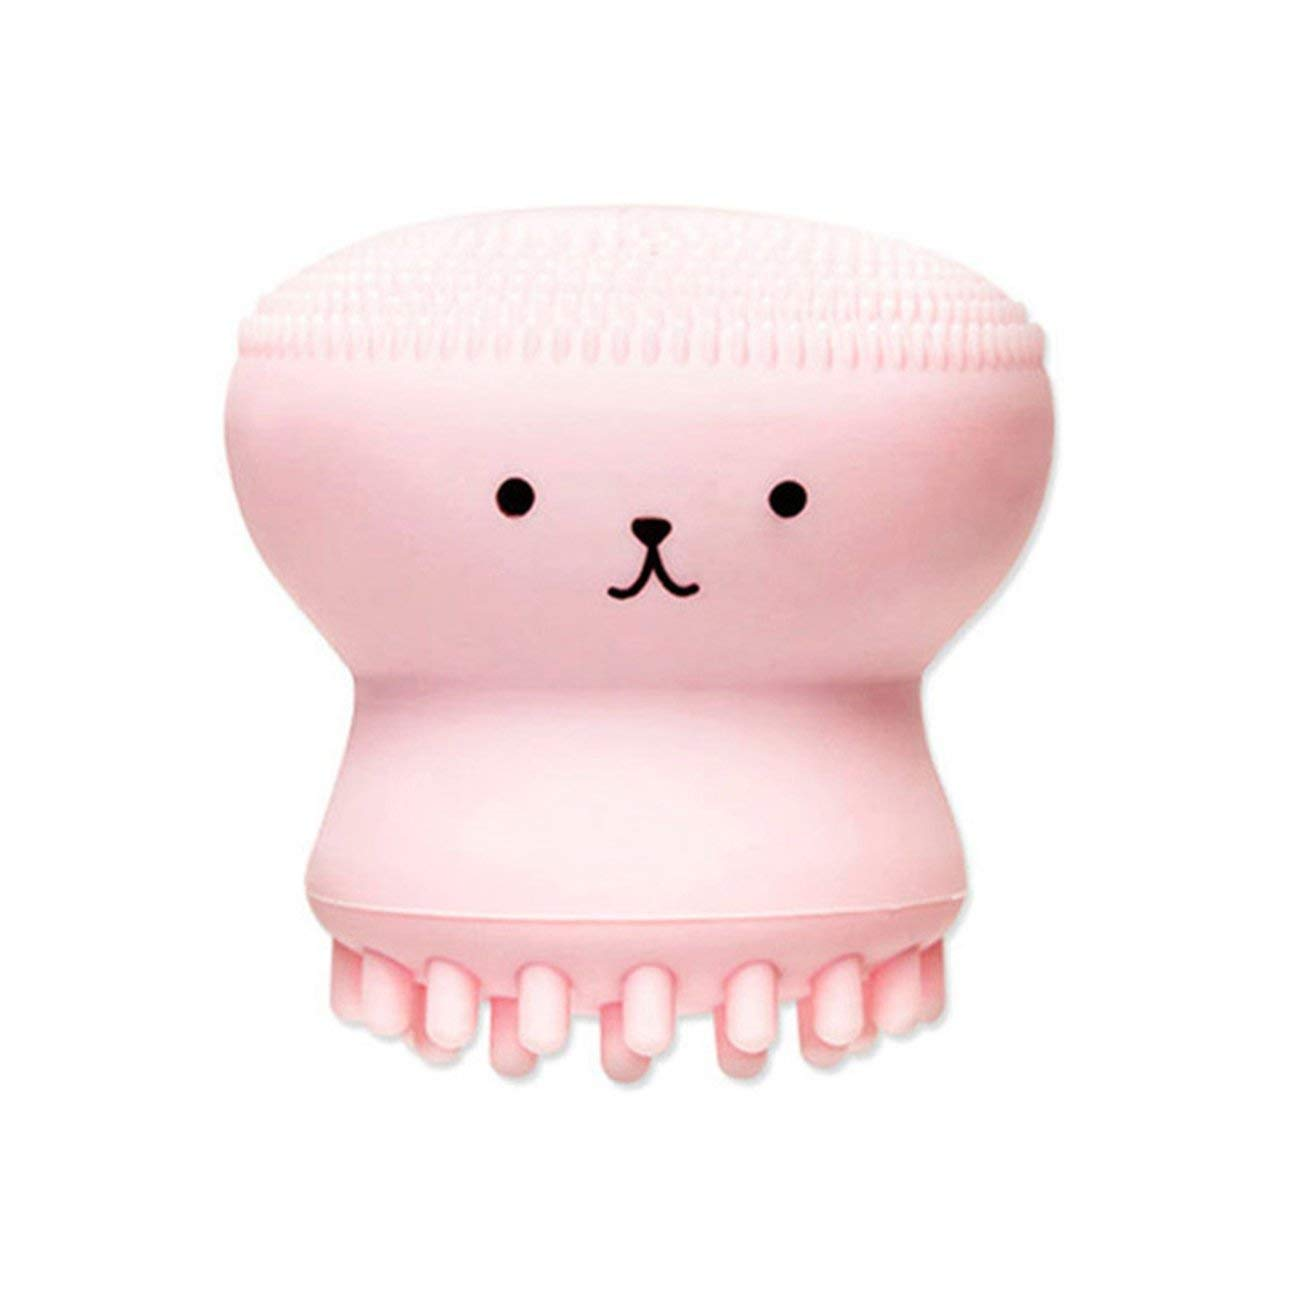 Liobaba Little Cute Jellyfish Wash Brush Exfoliating Face Cleaner Massage Soft Silicone Facial Brush Scrubber Deep Pore Cleaning Brush